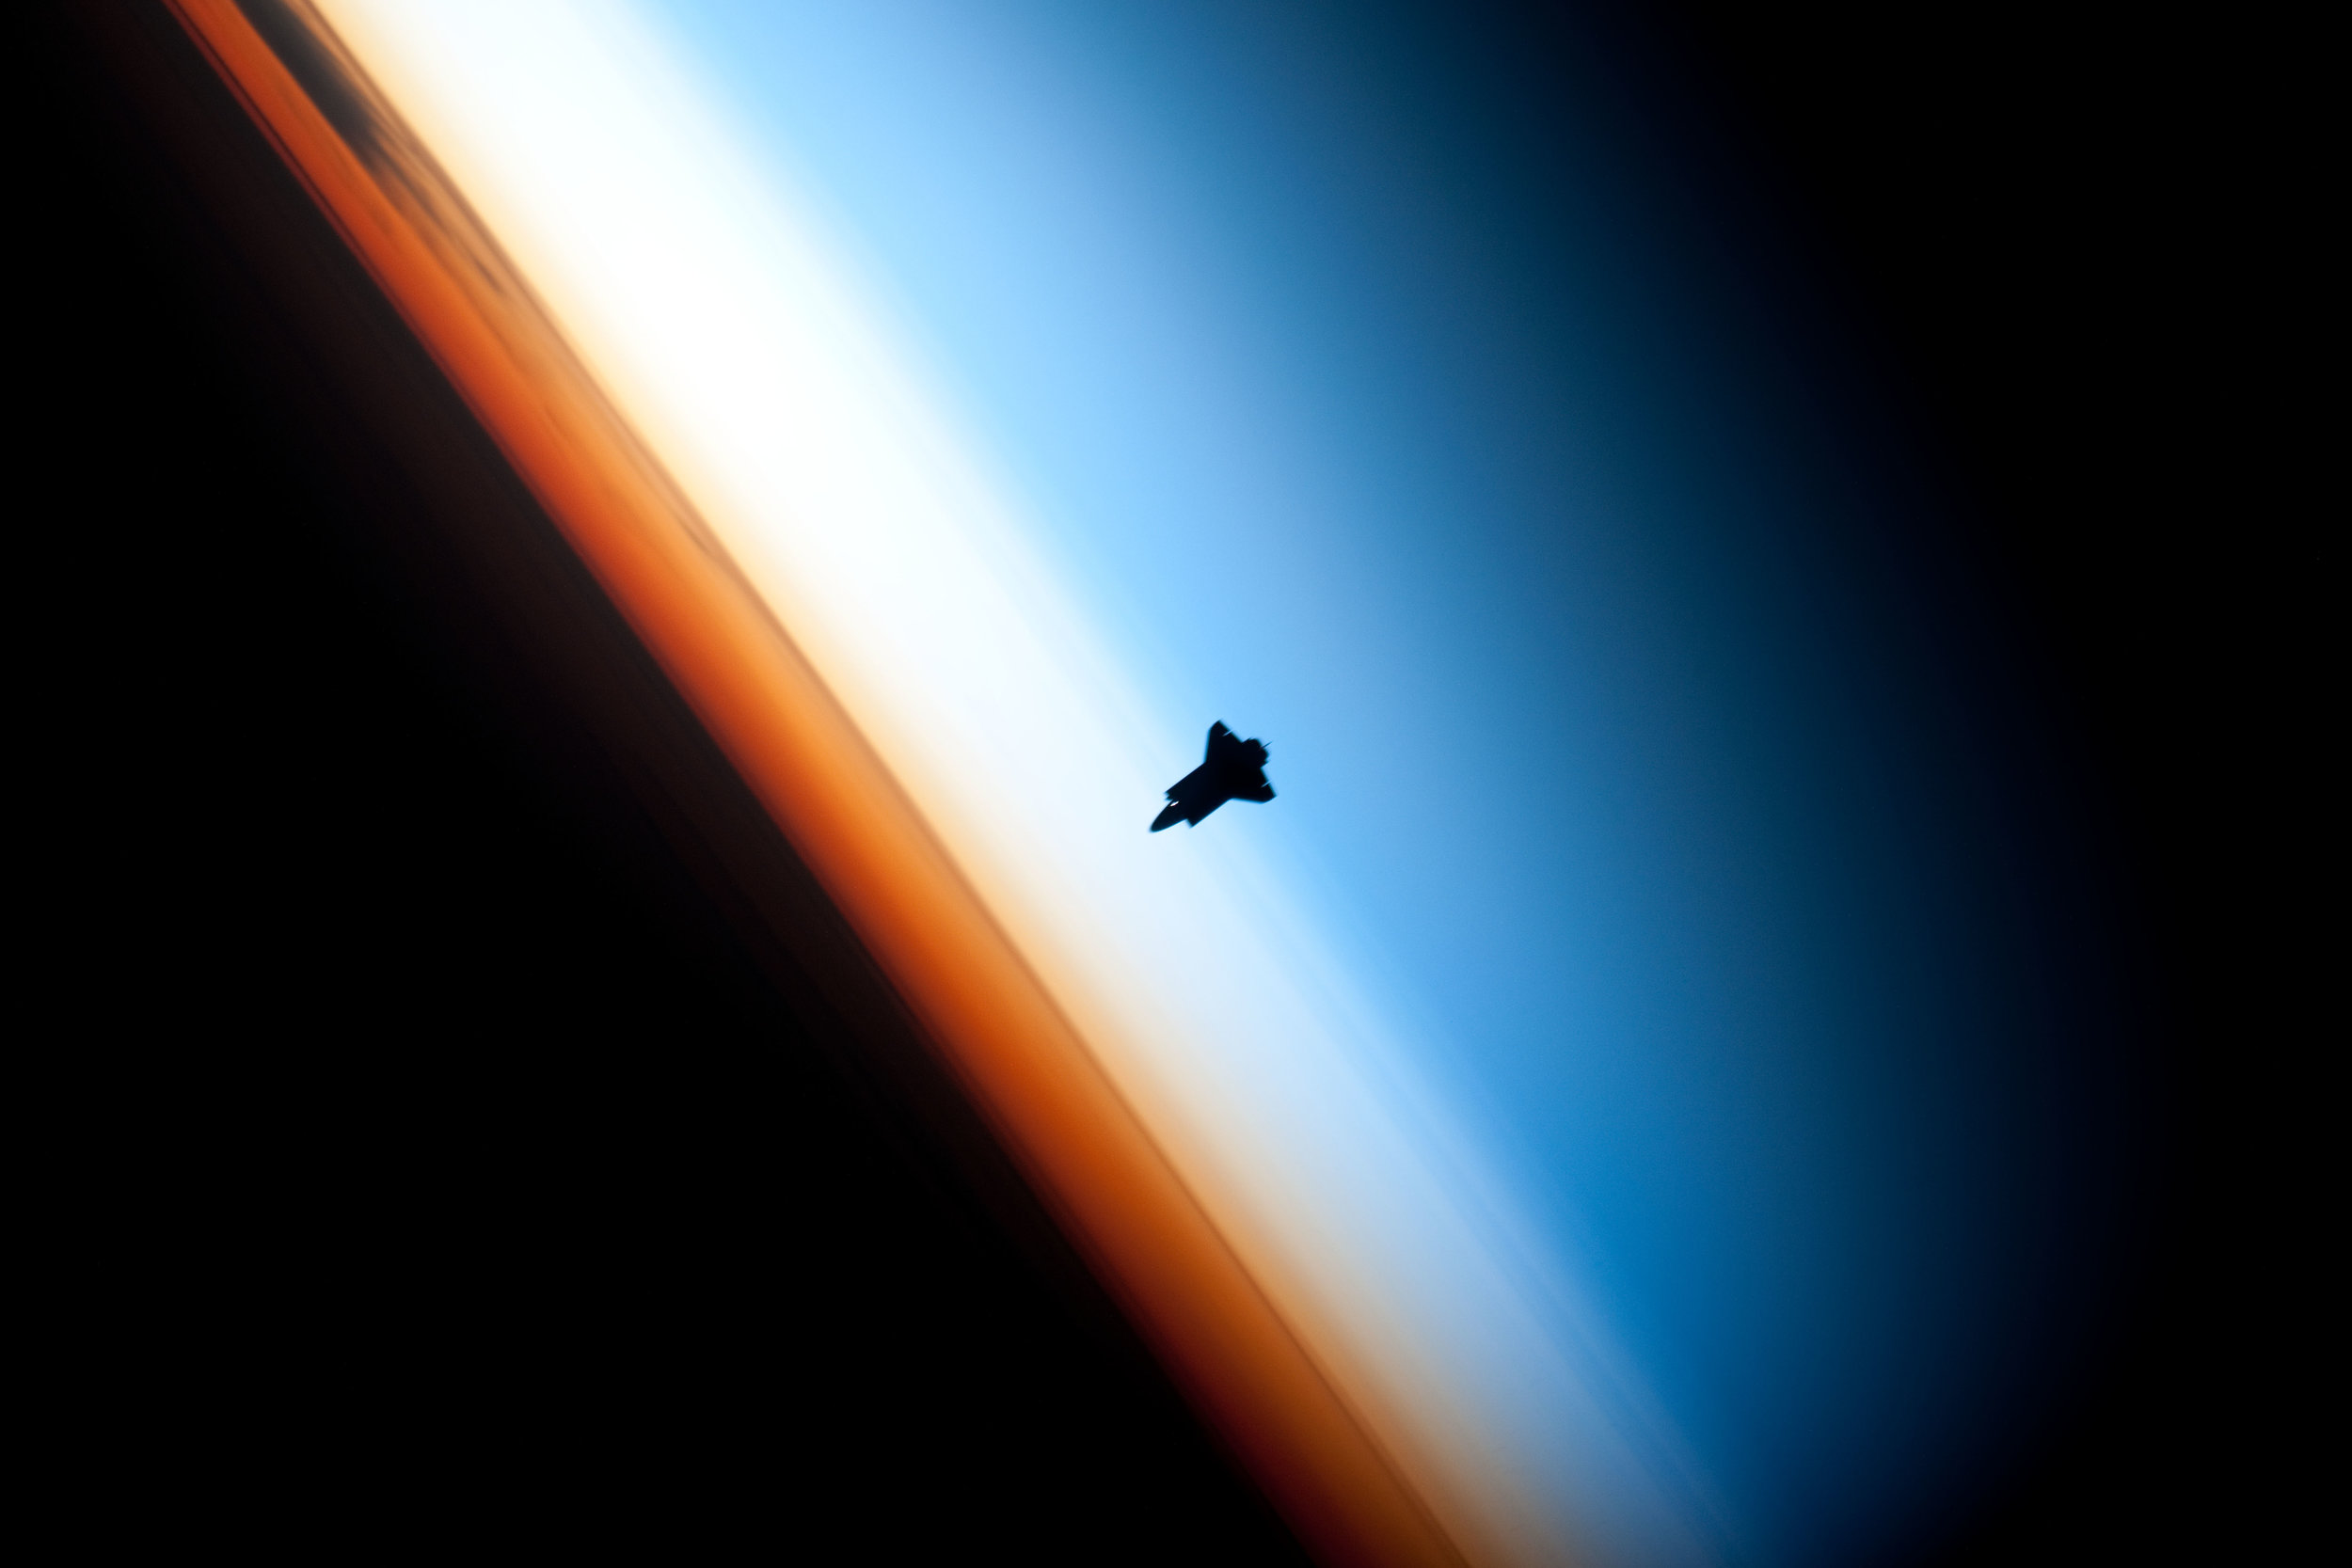 In a very unique setting over Earth's colorful horizon, the silhouette of the space shuttle Endeavour is featured in this photo by an Expedition 22 crew member on board the International Space Station, as the shuttle approached for its docking on Feb. 9 during the STS-130 mission. Image credit: NASA